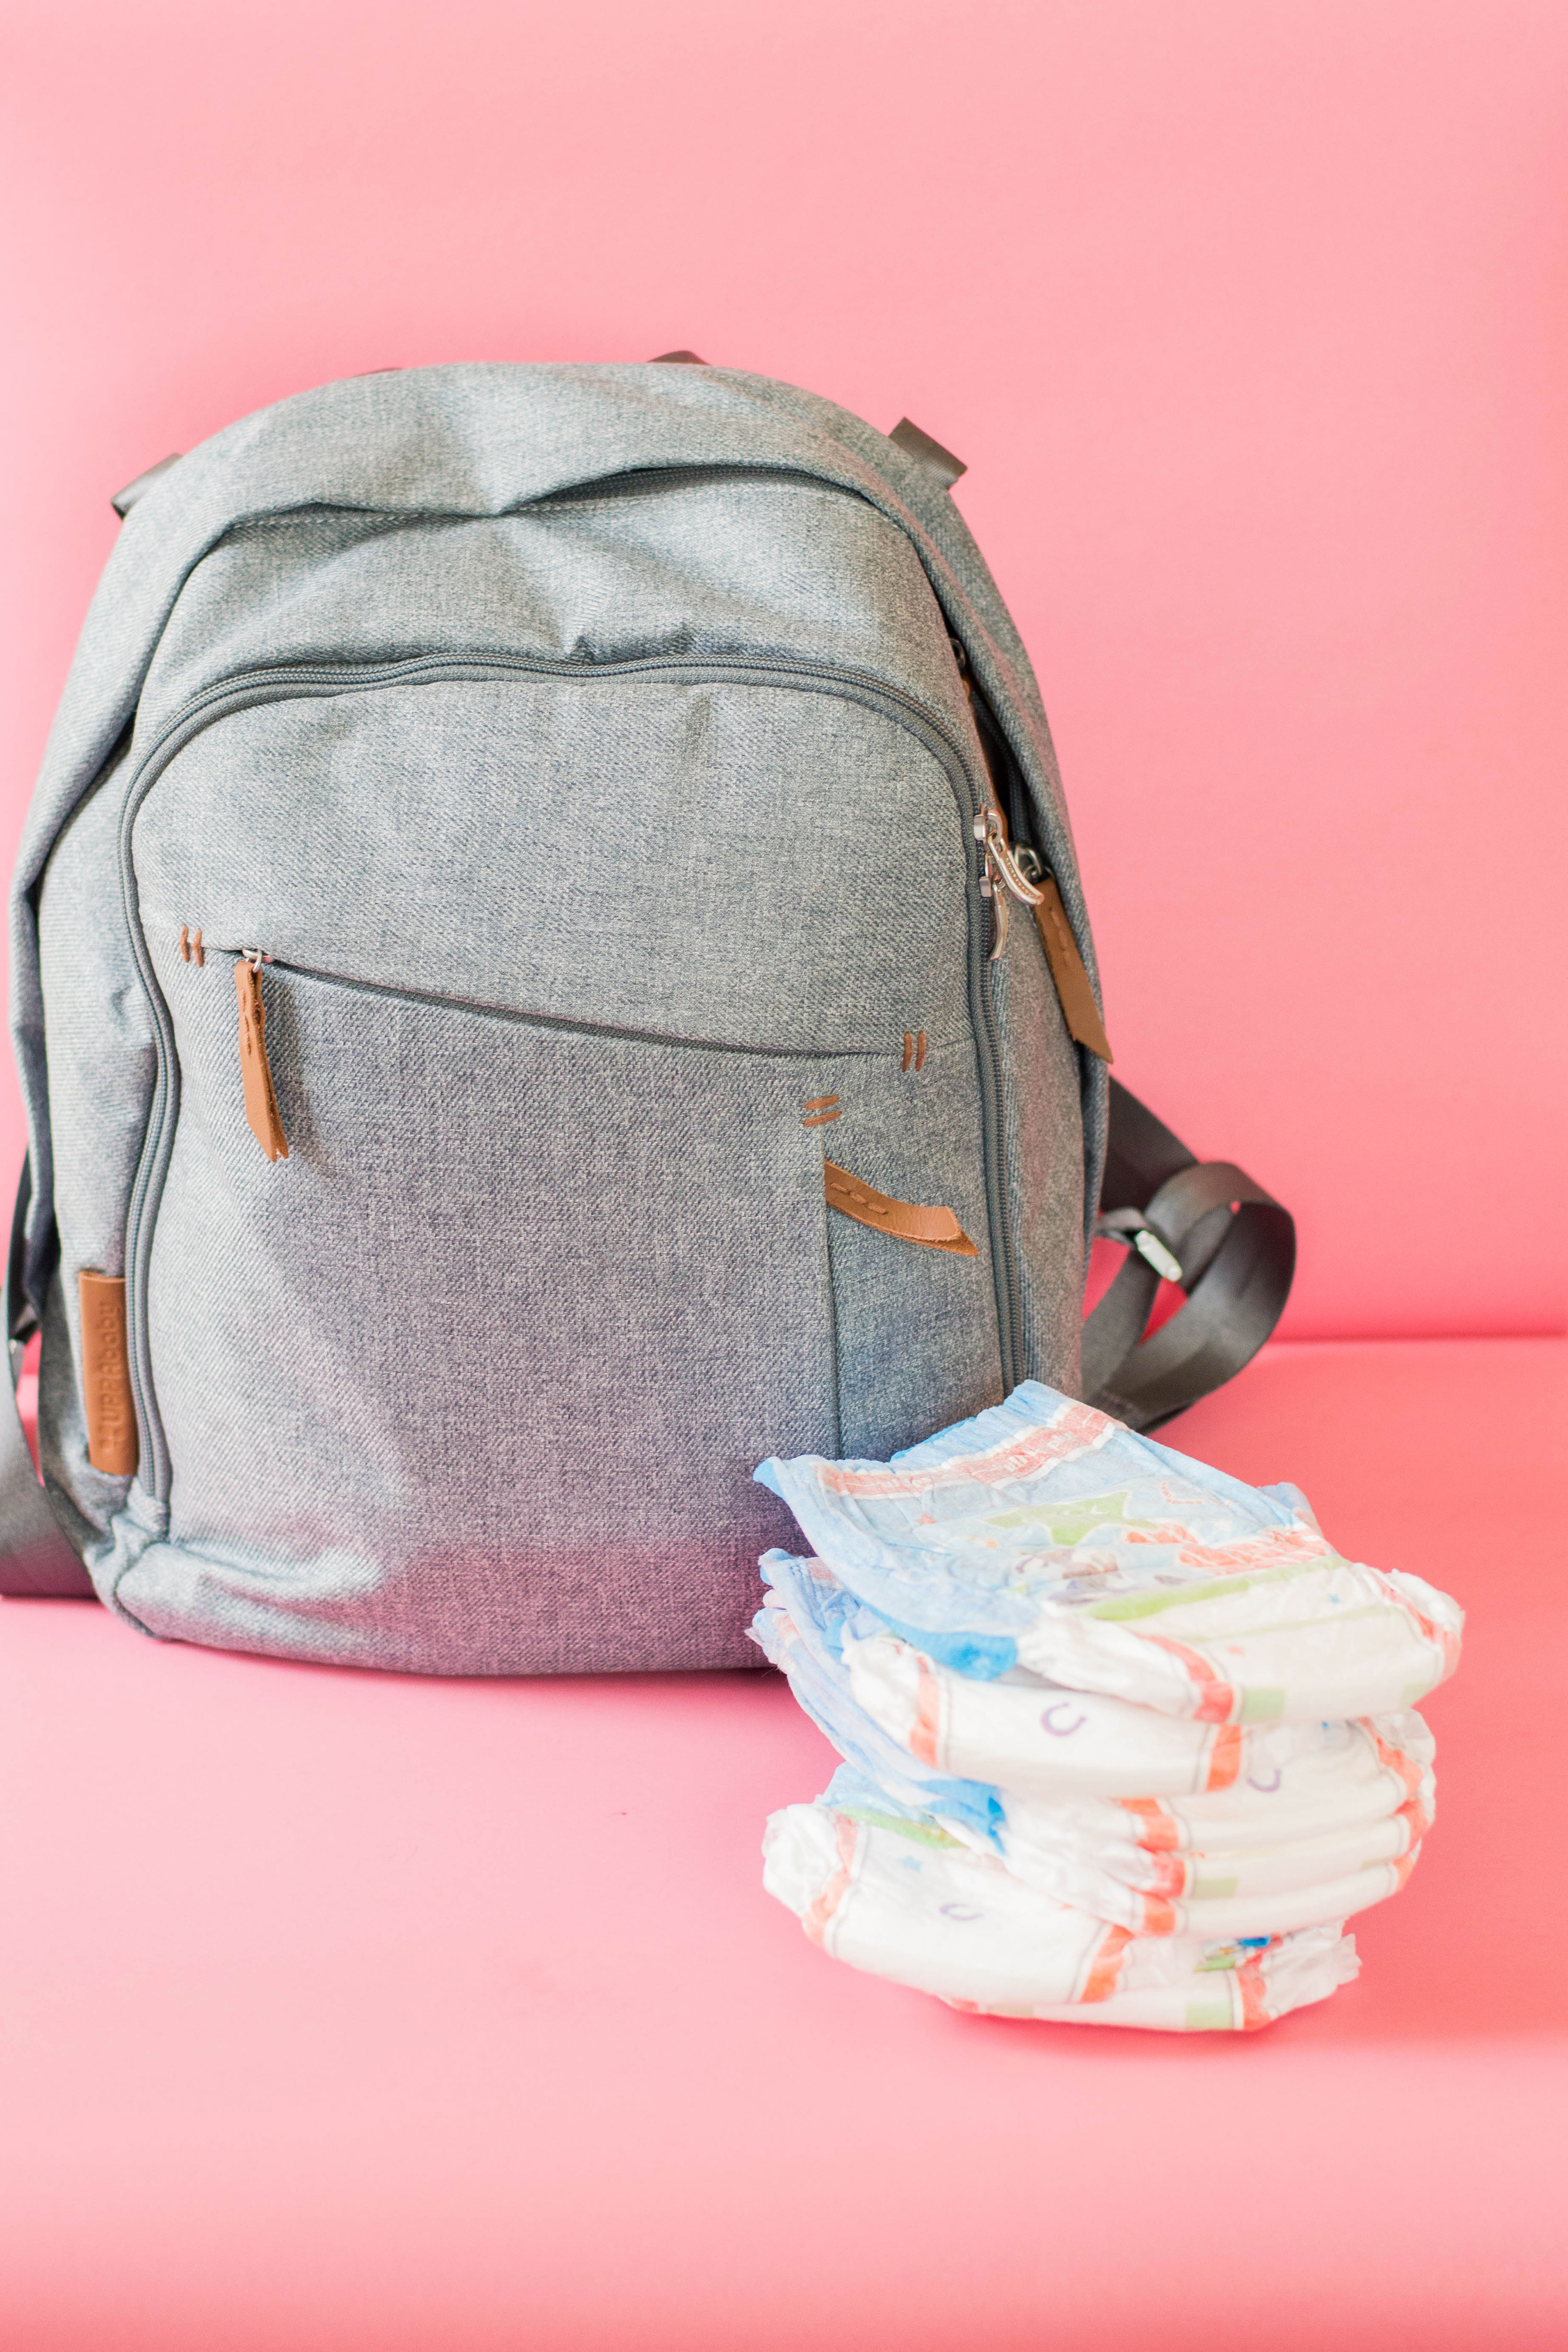 What are the things you have to take with you on your next adventure with your toddler? Don't stress too much! We got you covered with our list of diaper bag essentials. #packingdiaperbags